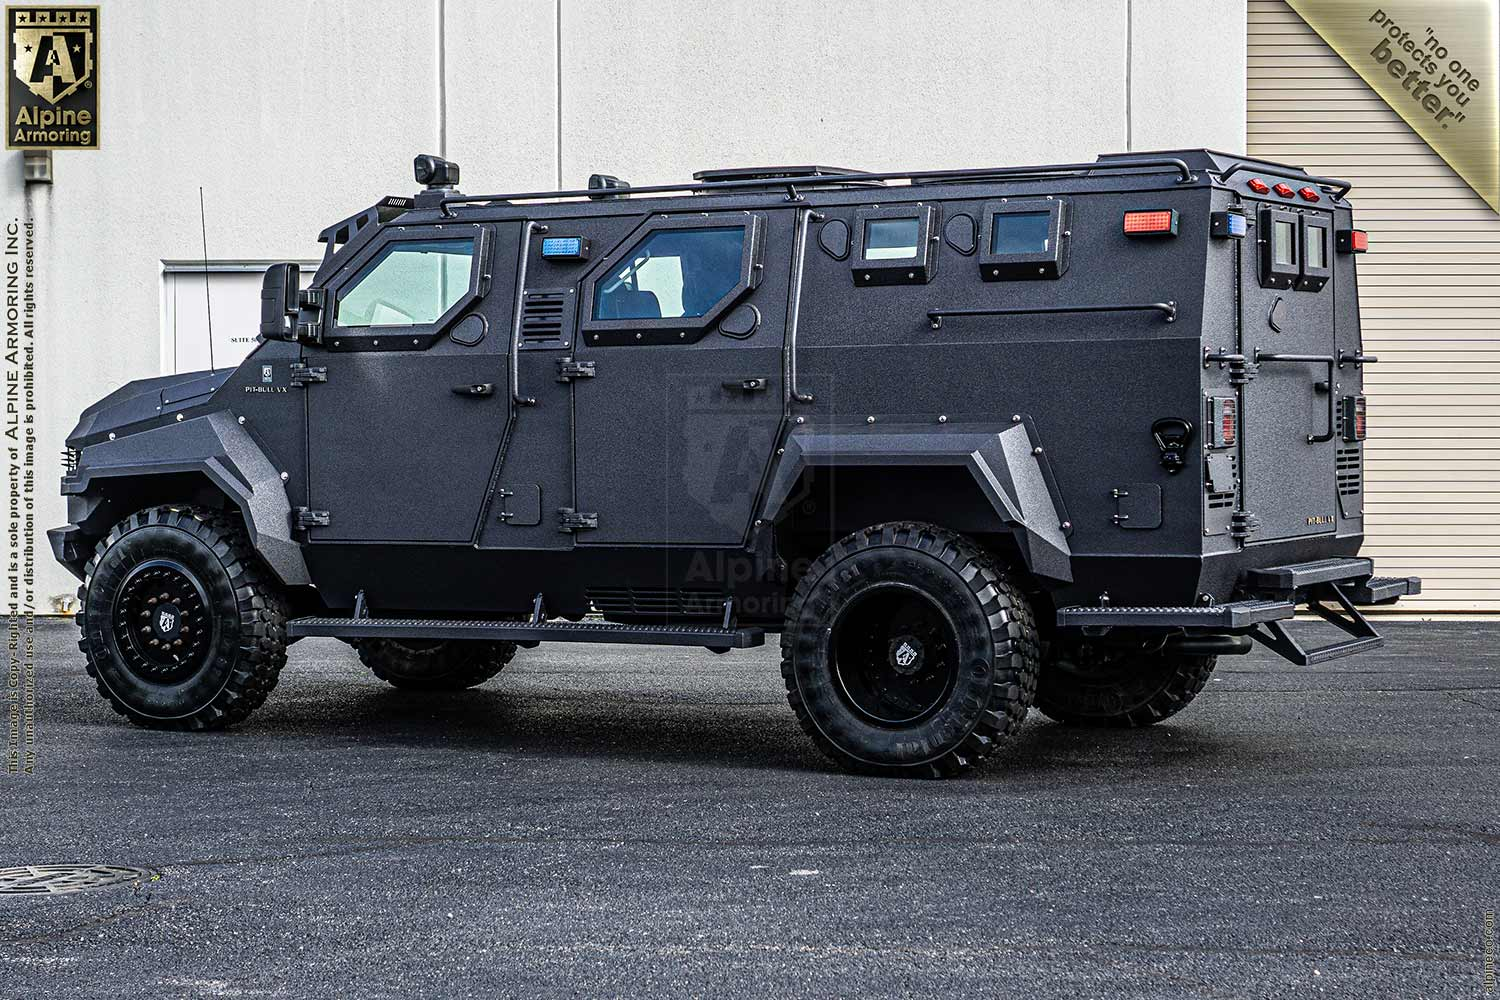 Inventory SWAT Truck Pit-Bull VX RHD B7 VIN: 1FDUF5HT4DEB83631  Exterior Images